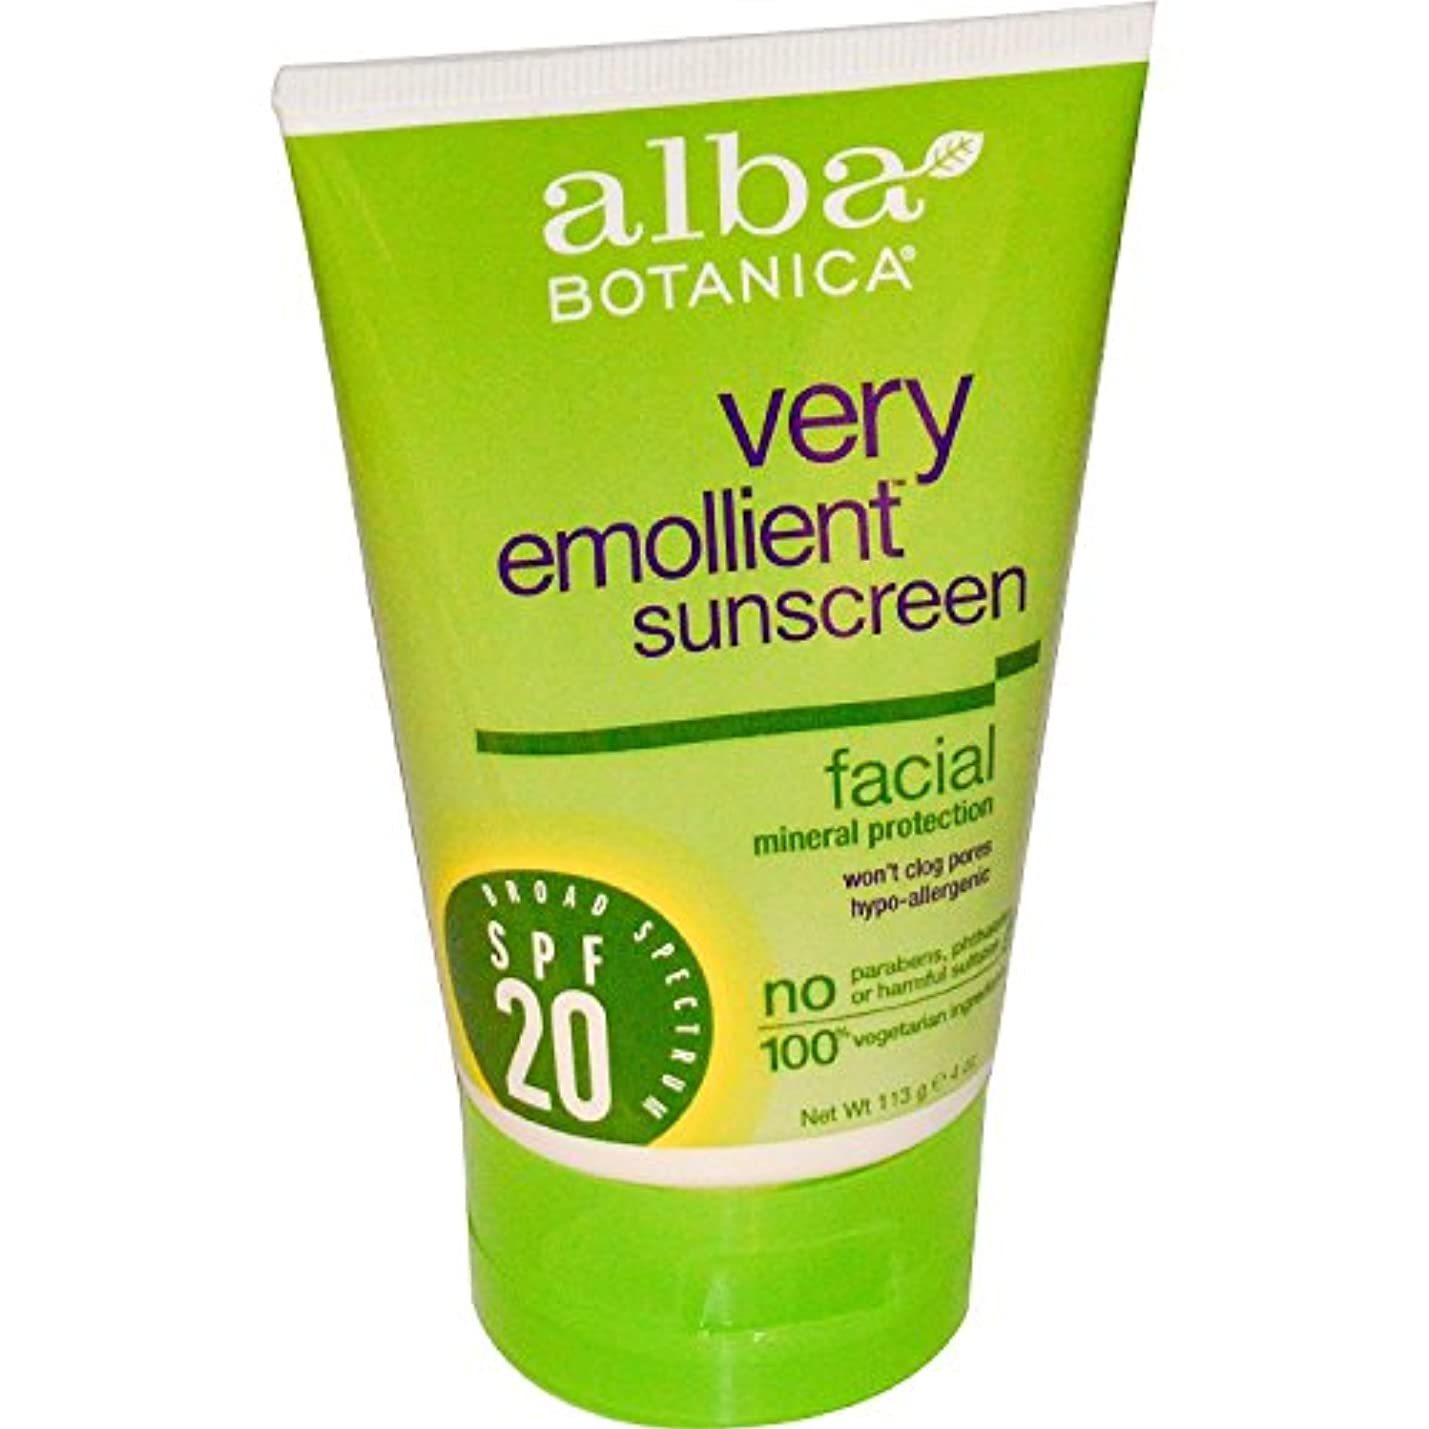 債務者米国喉頭Natural Sunblock - Very Emollient - Mineral SPF 20 - Facial - 4 oz by Alba Botanica